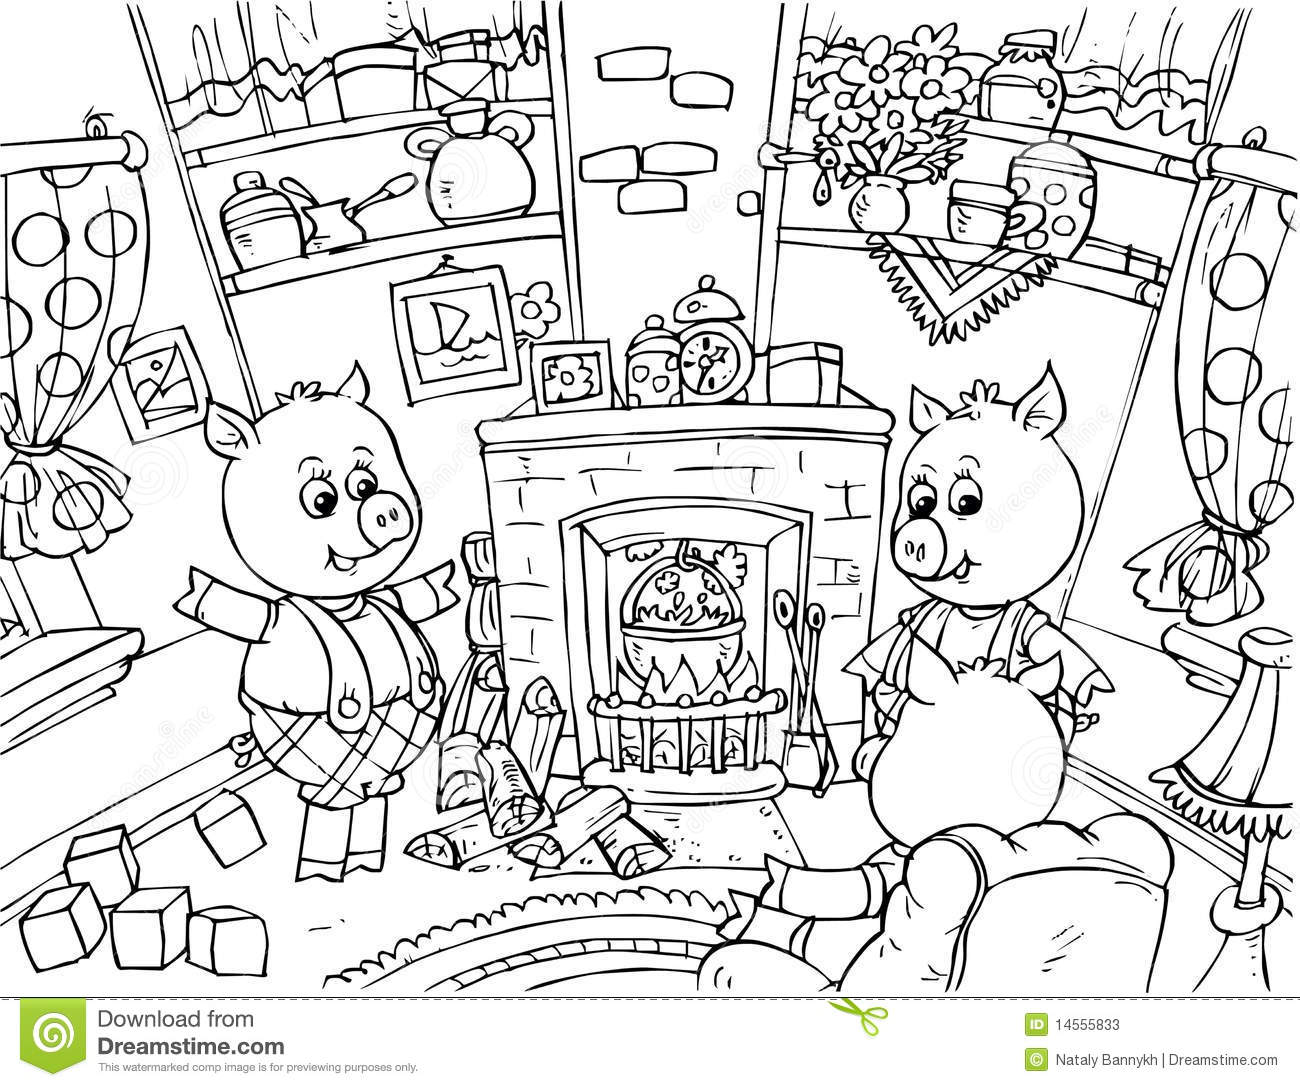 Coloring Pages 3 Little Pigs Coloring Page three little pigs coloring pages eassume com eassume